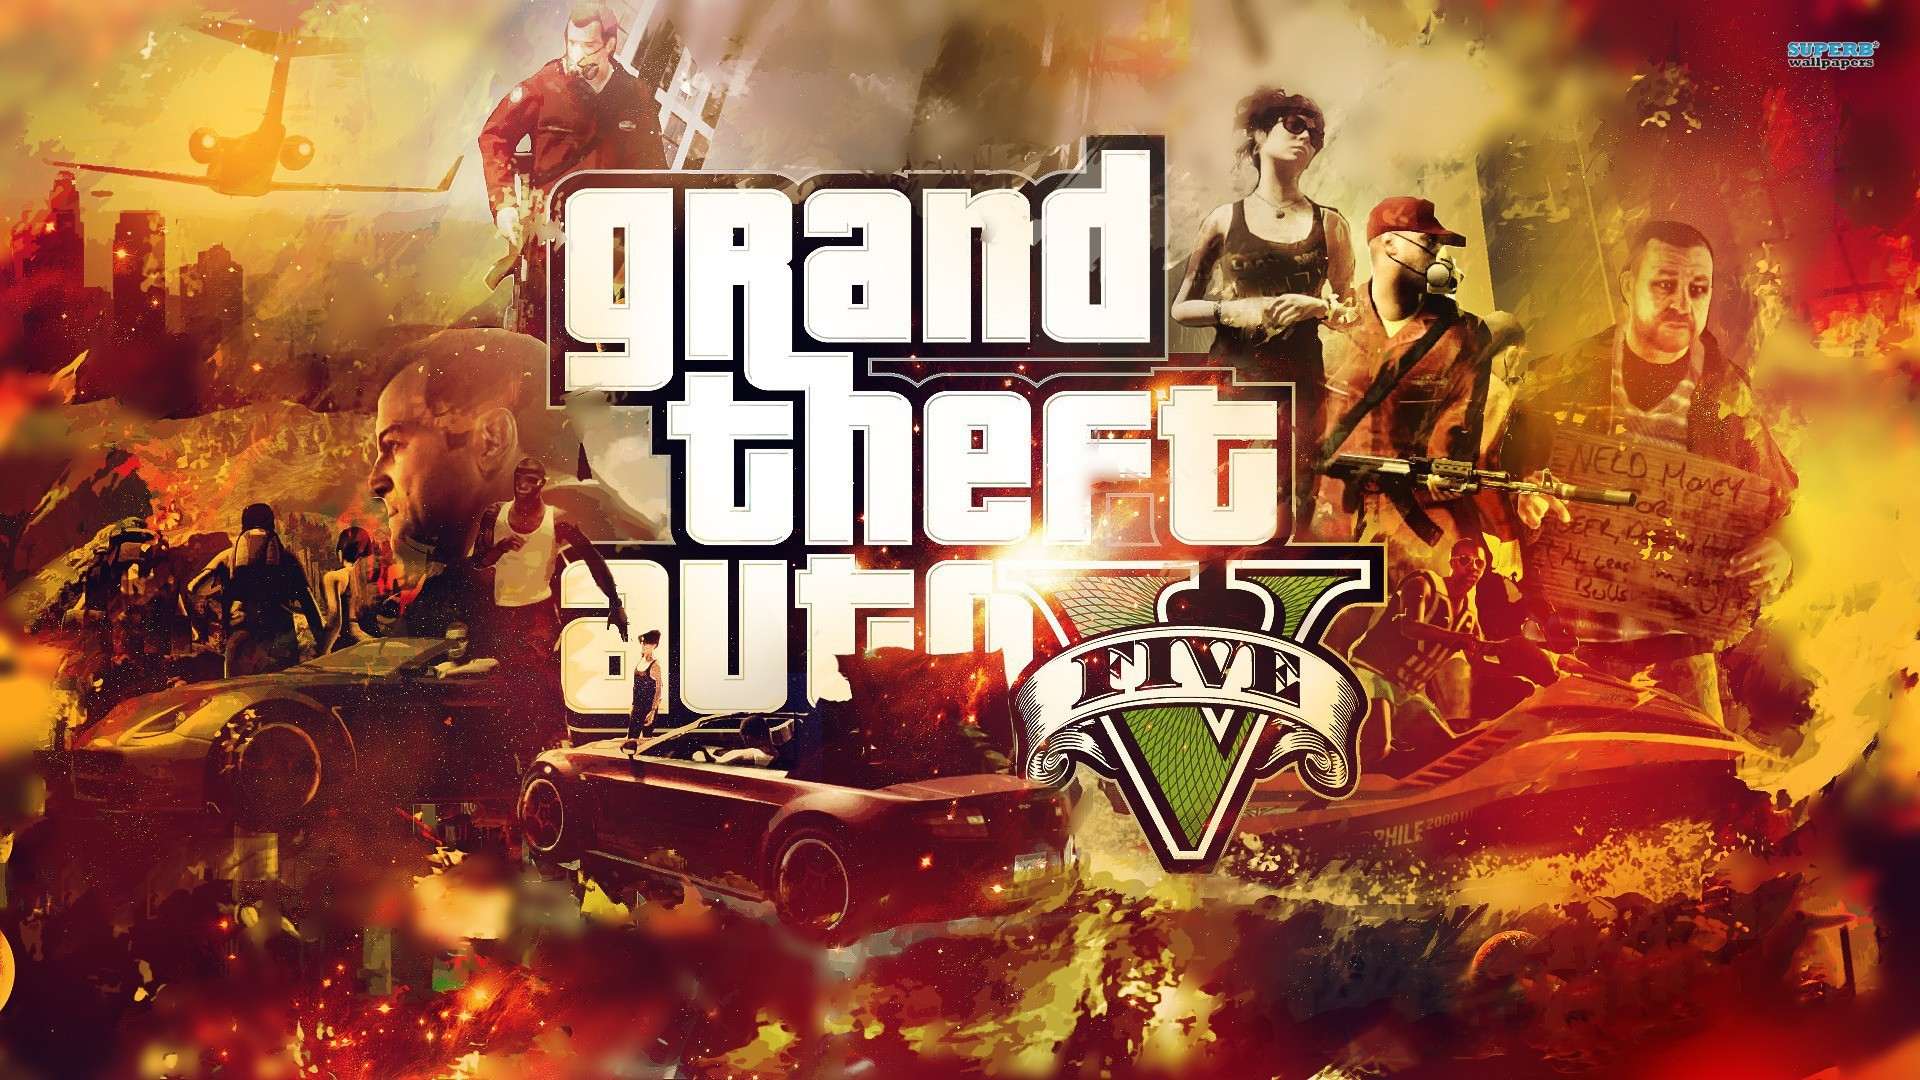 Grand-theft-auto-v-1920x1080-theft-auto-via-www-all-in-wallpaper-wp3406370